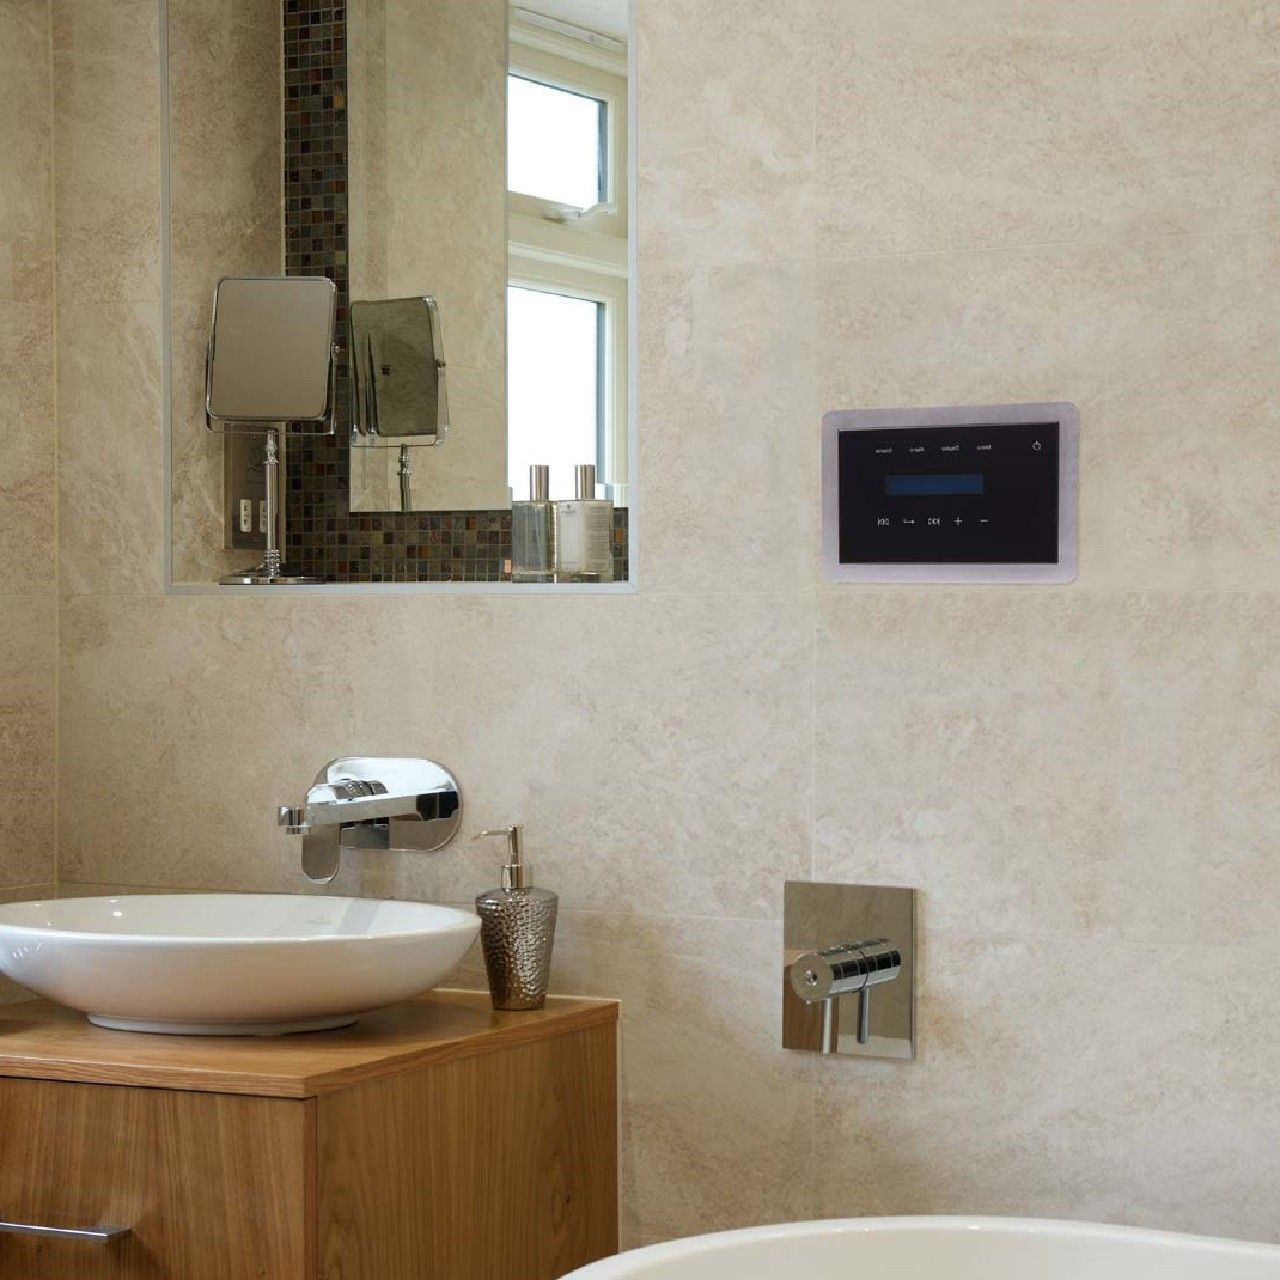 Proofvision Elite Bathroom Music System Listen To Your Favourite Tracks While You Get Ready Bathroom Music House Bathroom Tv In Bathroom